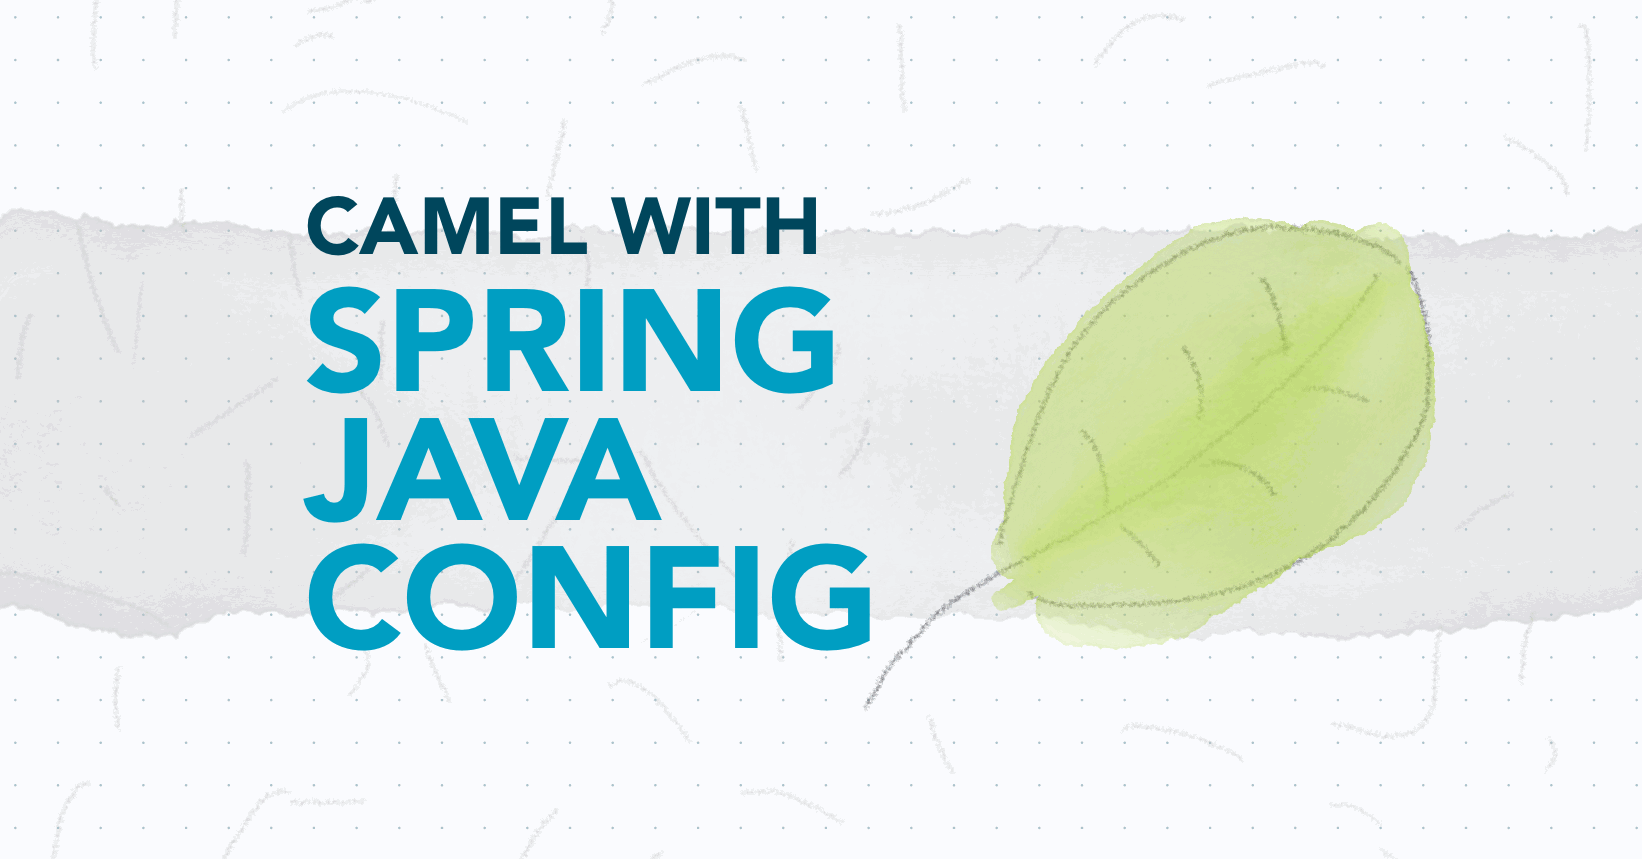 How to use Camel with Spring Java configuration - Tom D's